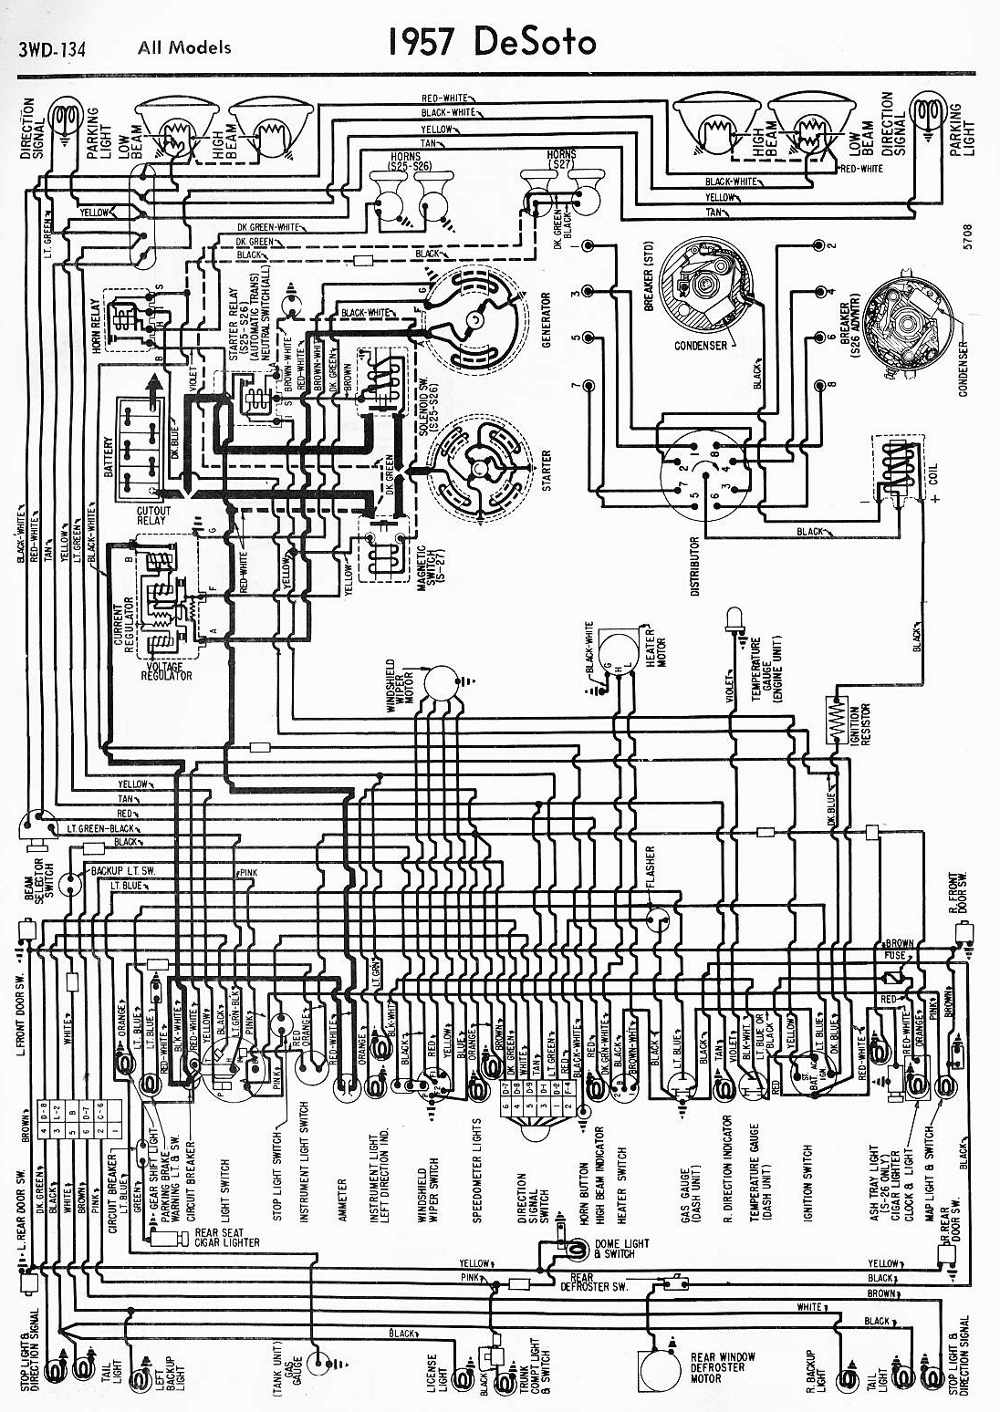 1939 Chrysler Wiring Diagram Free For You 2000 Town And Country 1947 Packard Audi Sebring